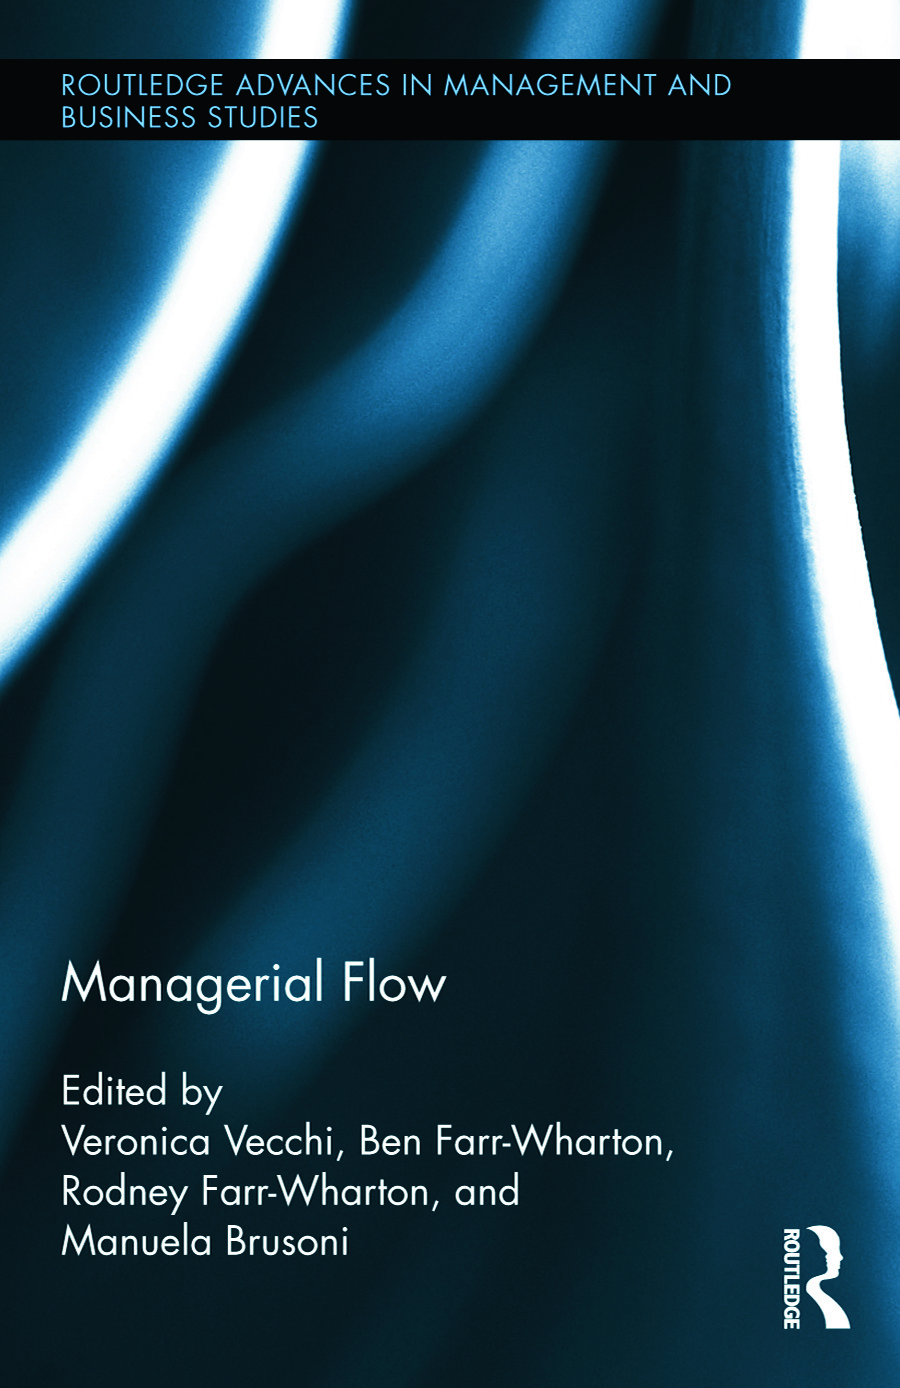 Urban Regeneration in the Netherlands: Managerial Flow and Organizational Form